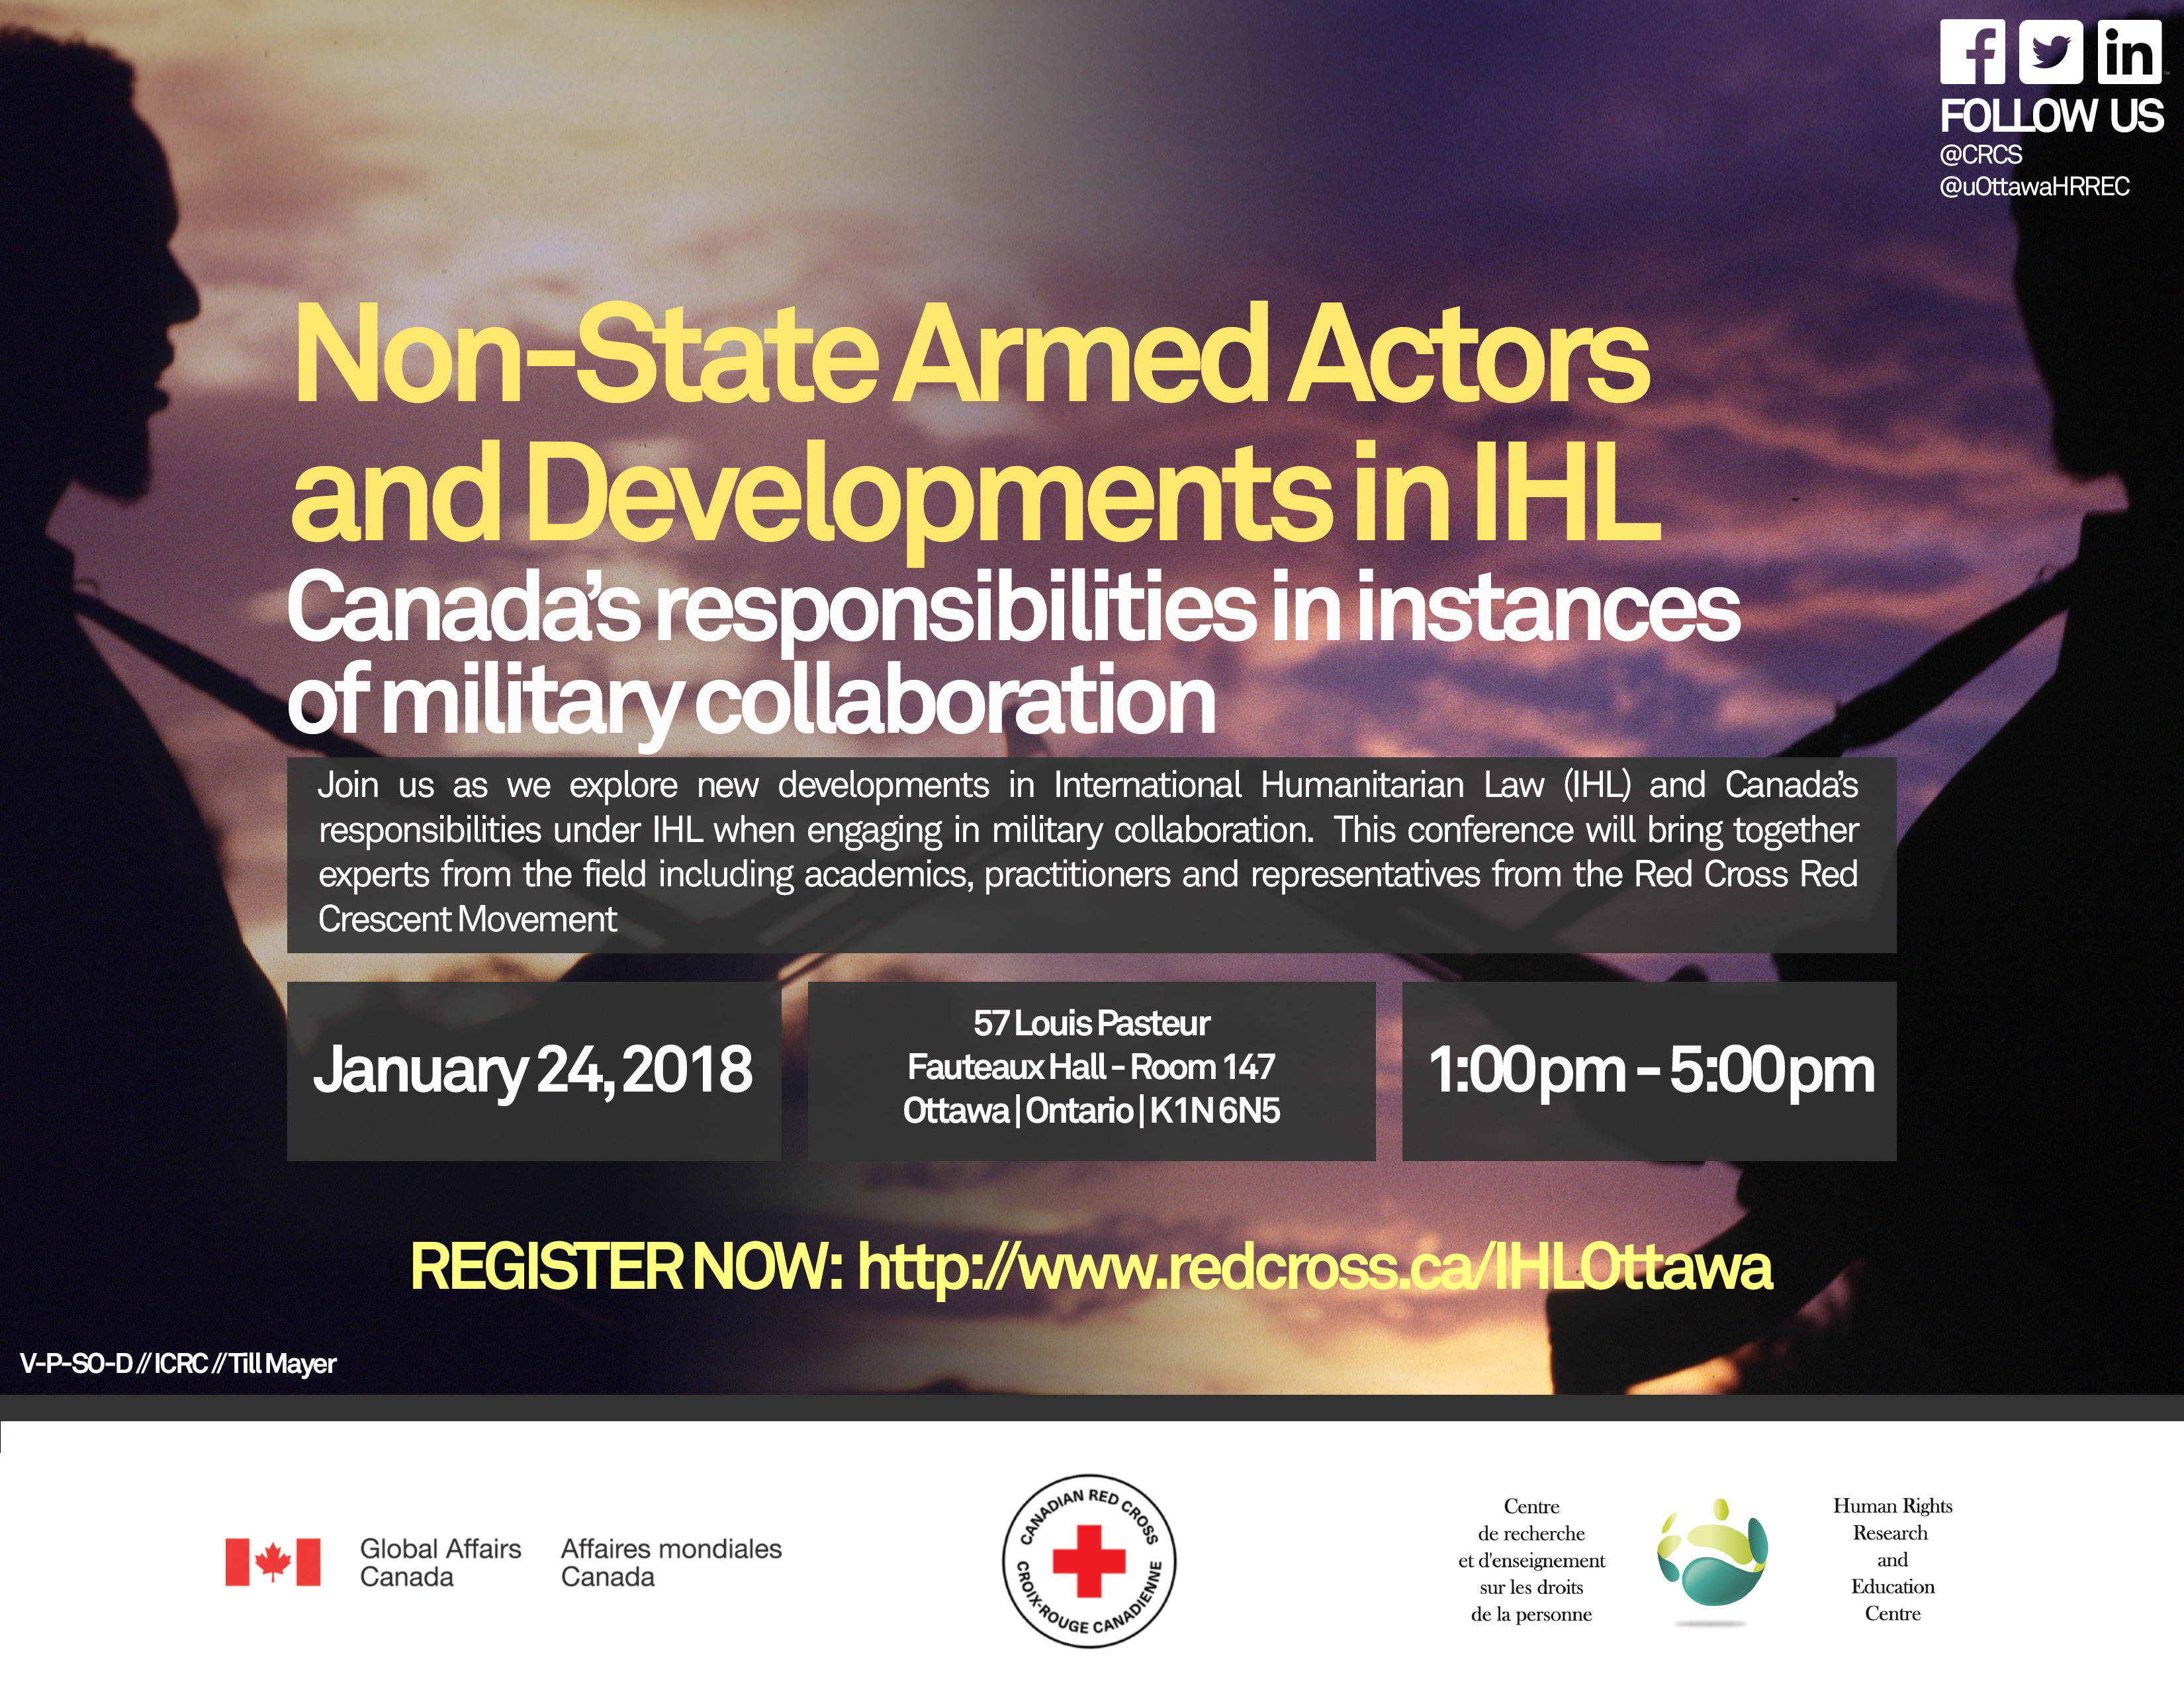 2018 Conference of the Canadian Red Cross on IHL